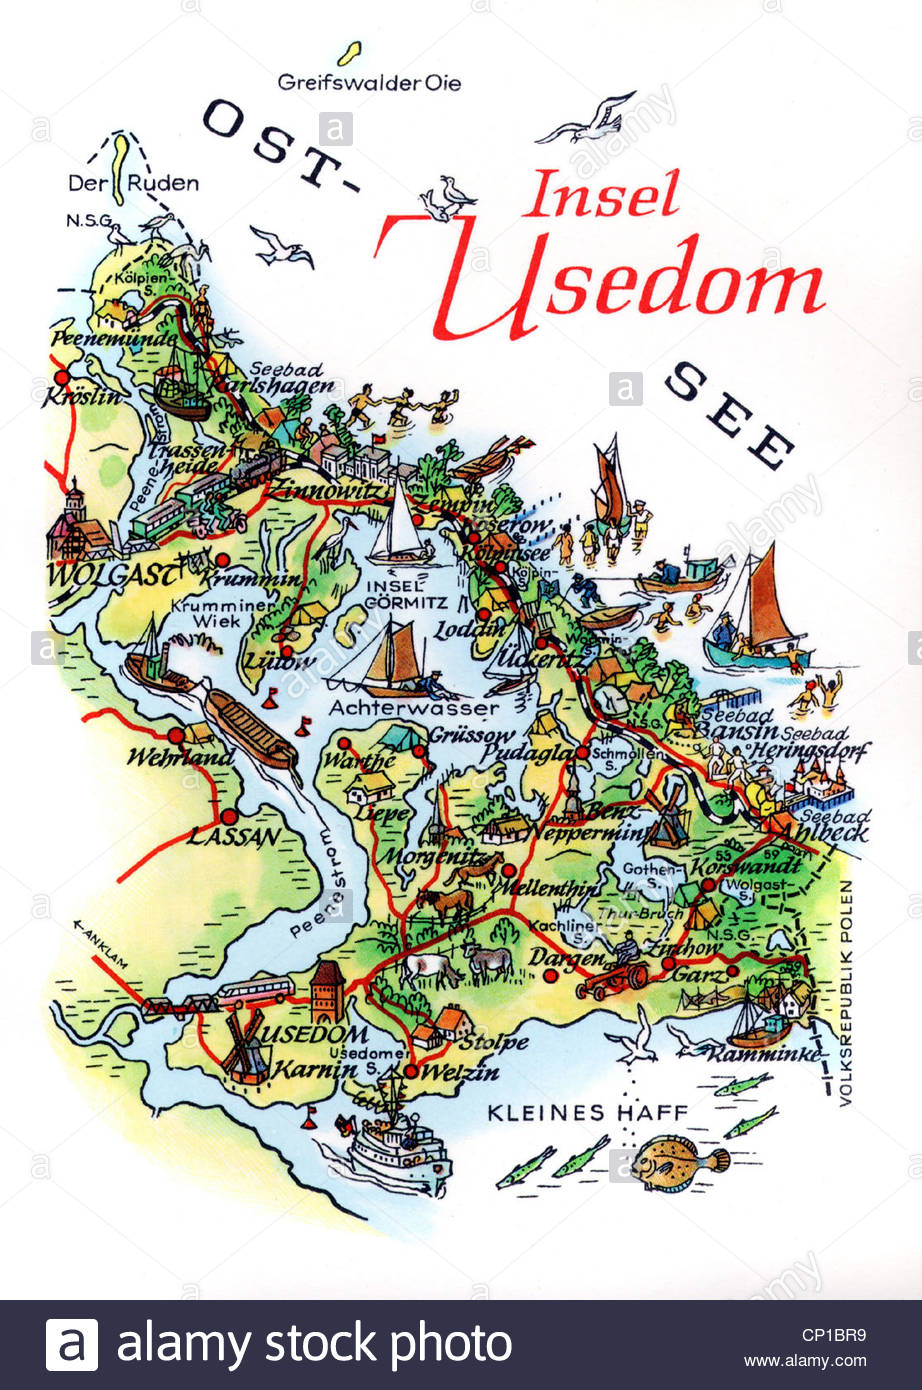 922x1390 geography travel germany islands usedom map drawing by a